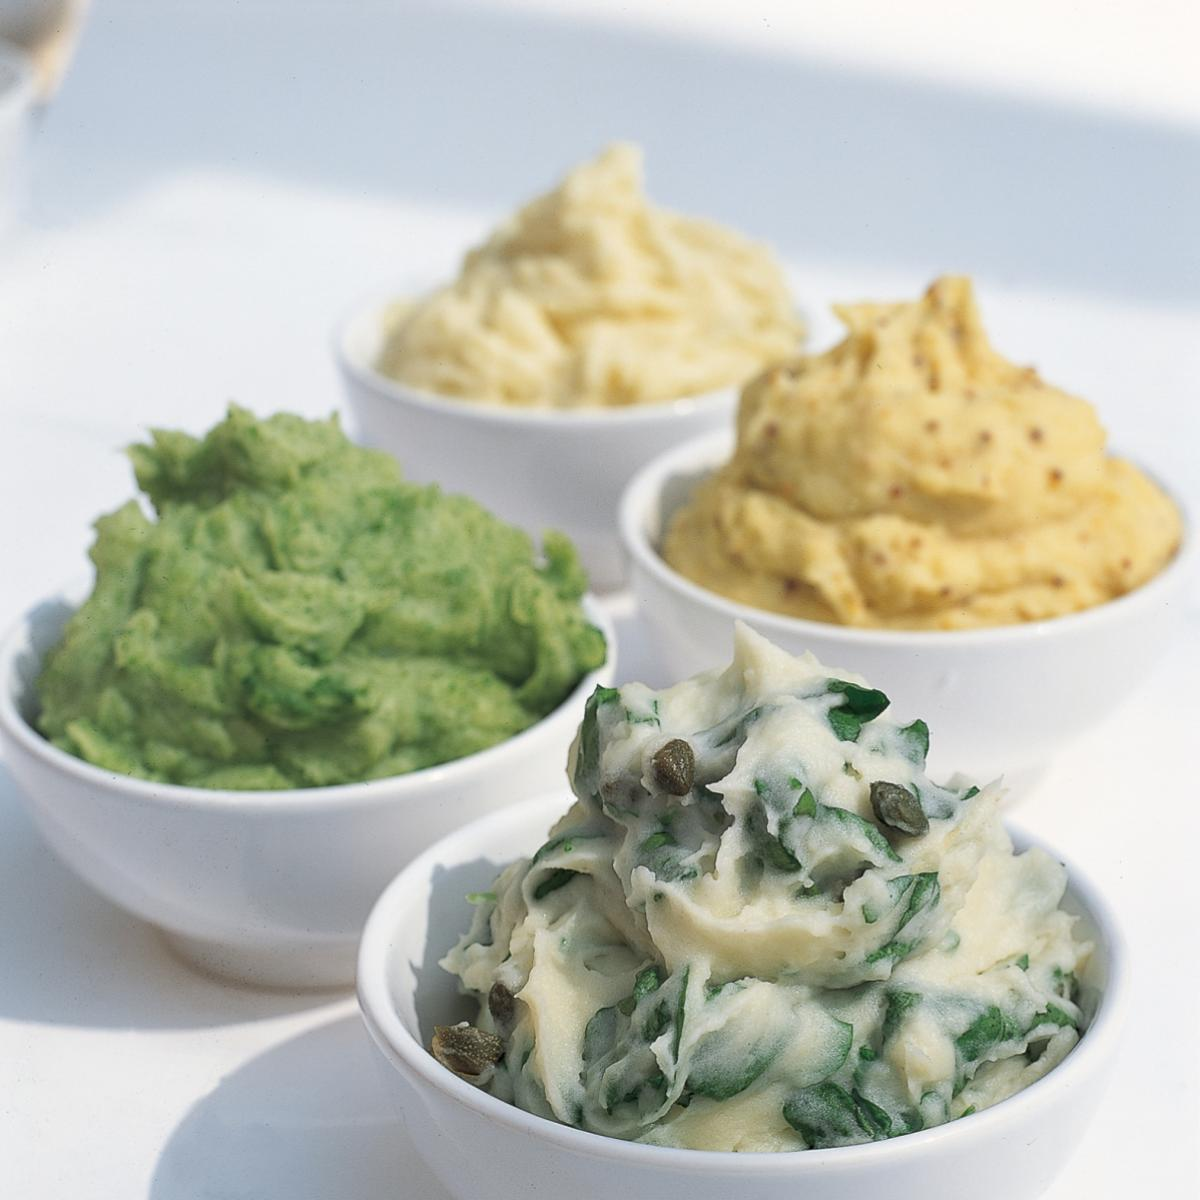 A picture of Delia's Aligot (Mashed Potatoes with Garlic and Cheese) recipe